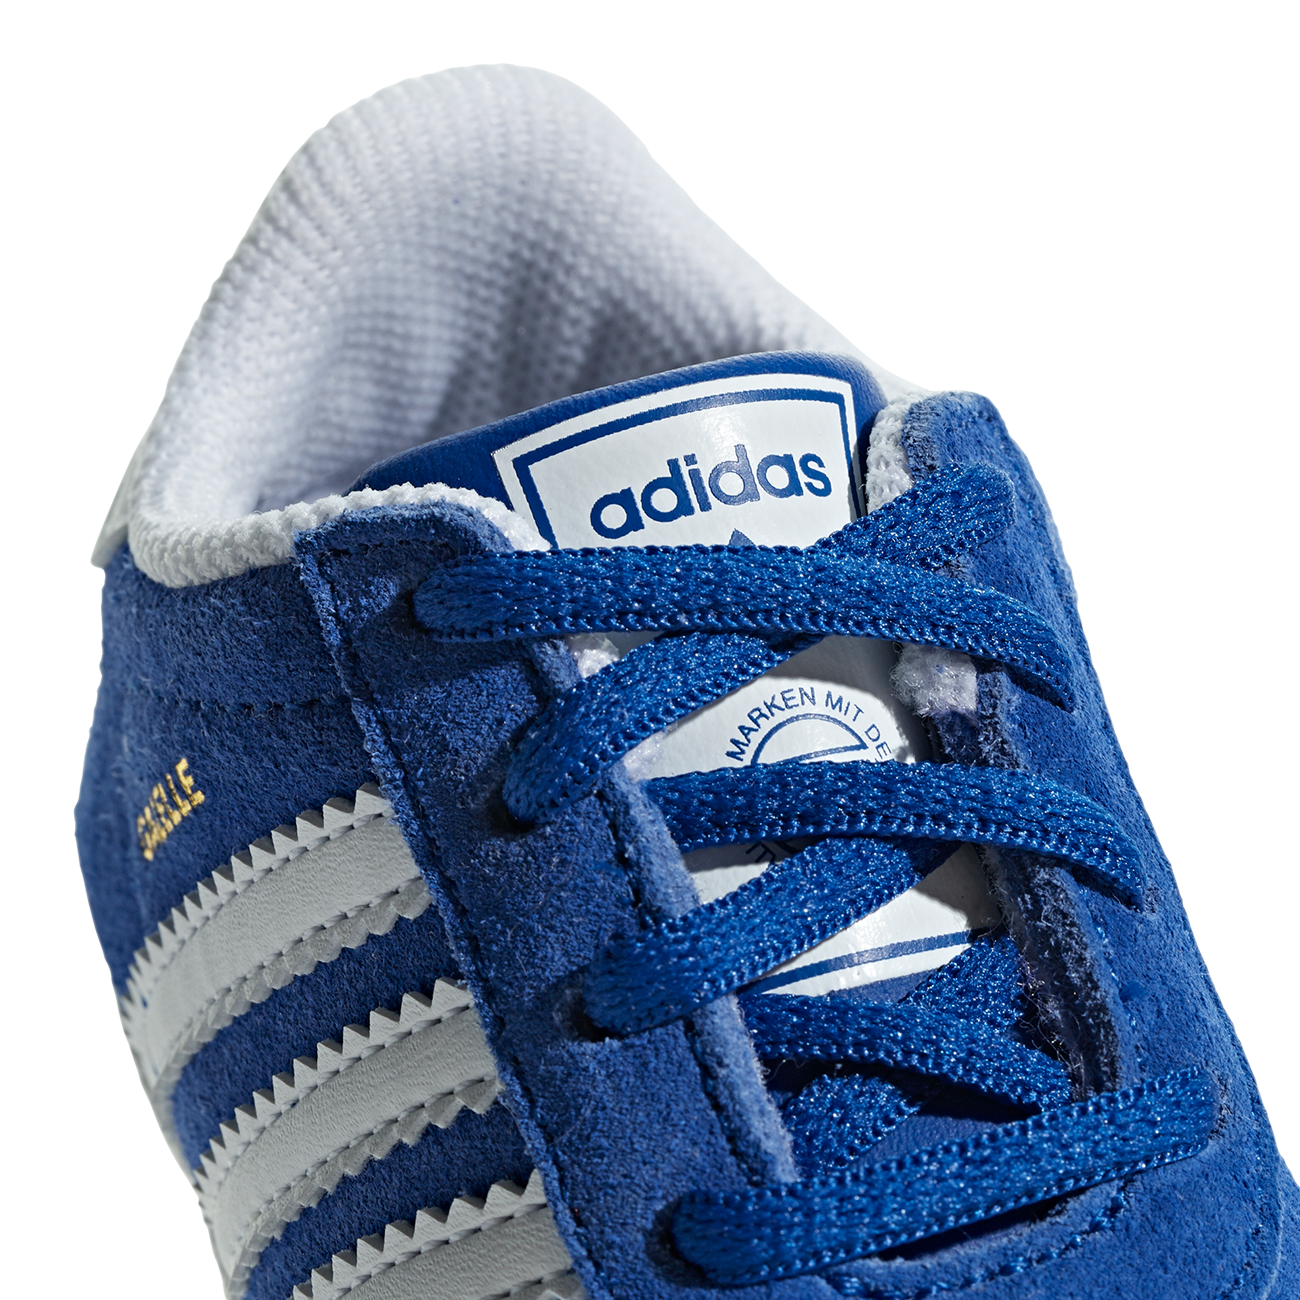 3dfc6fb4516 adidas Gazelle Crib Baby Sneakers Collegiate Navy White